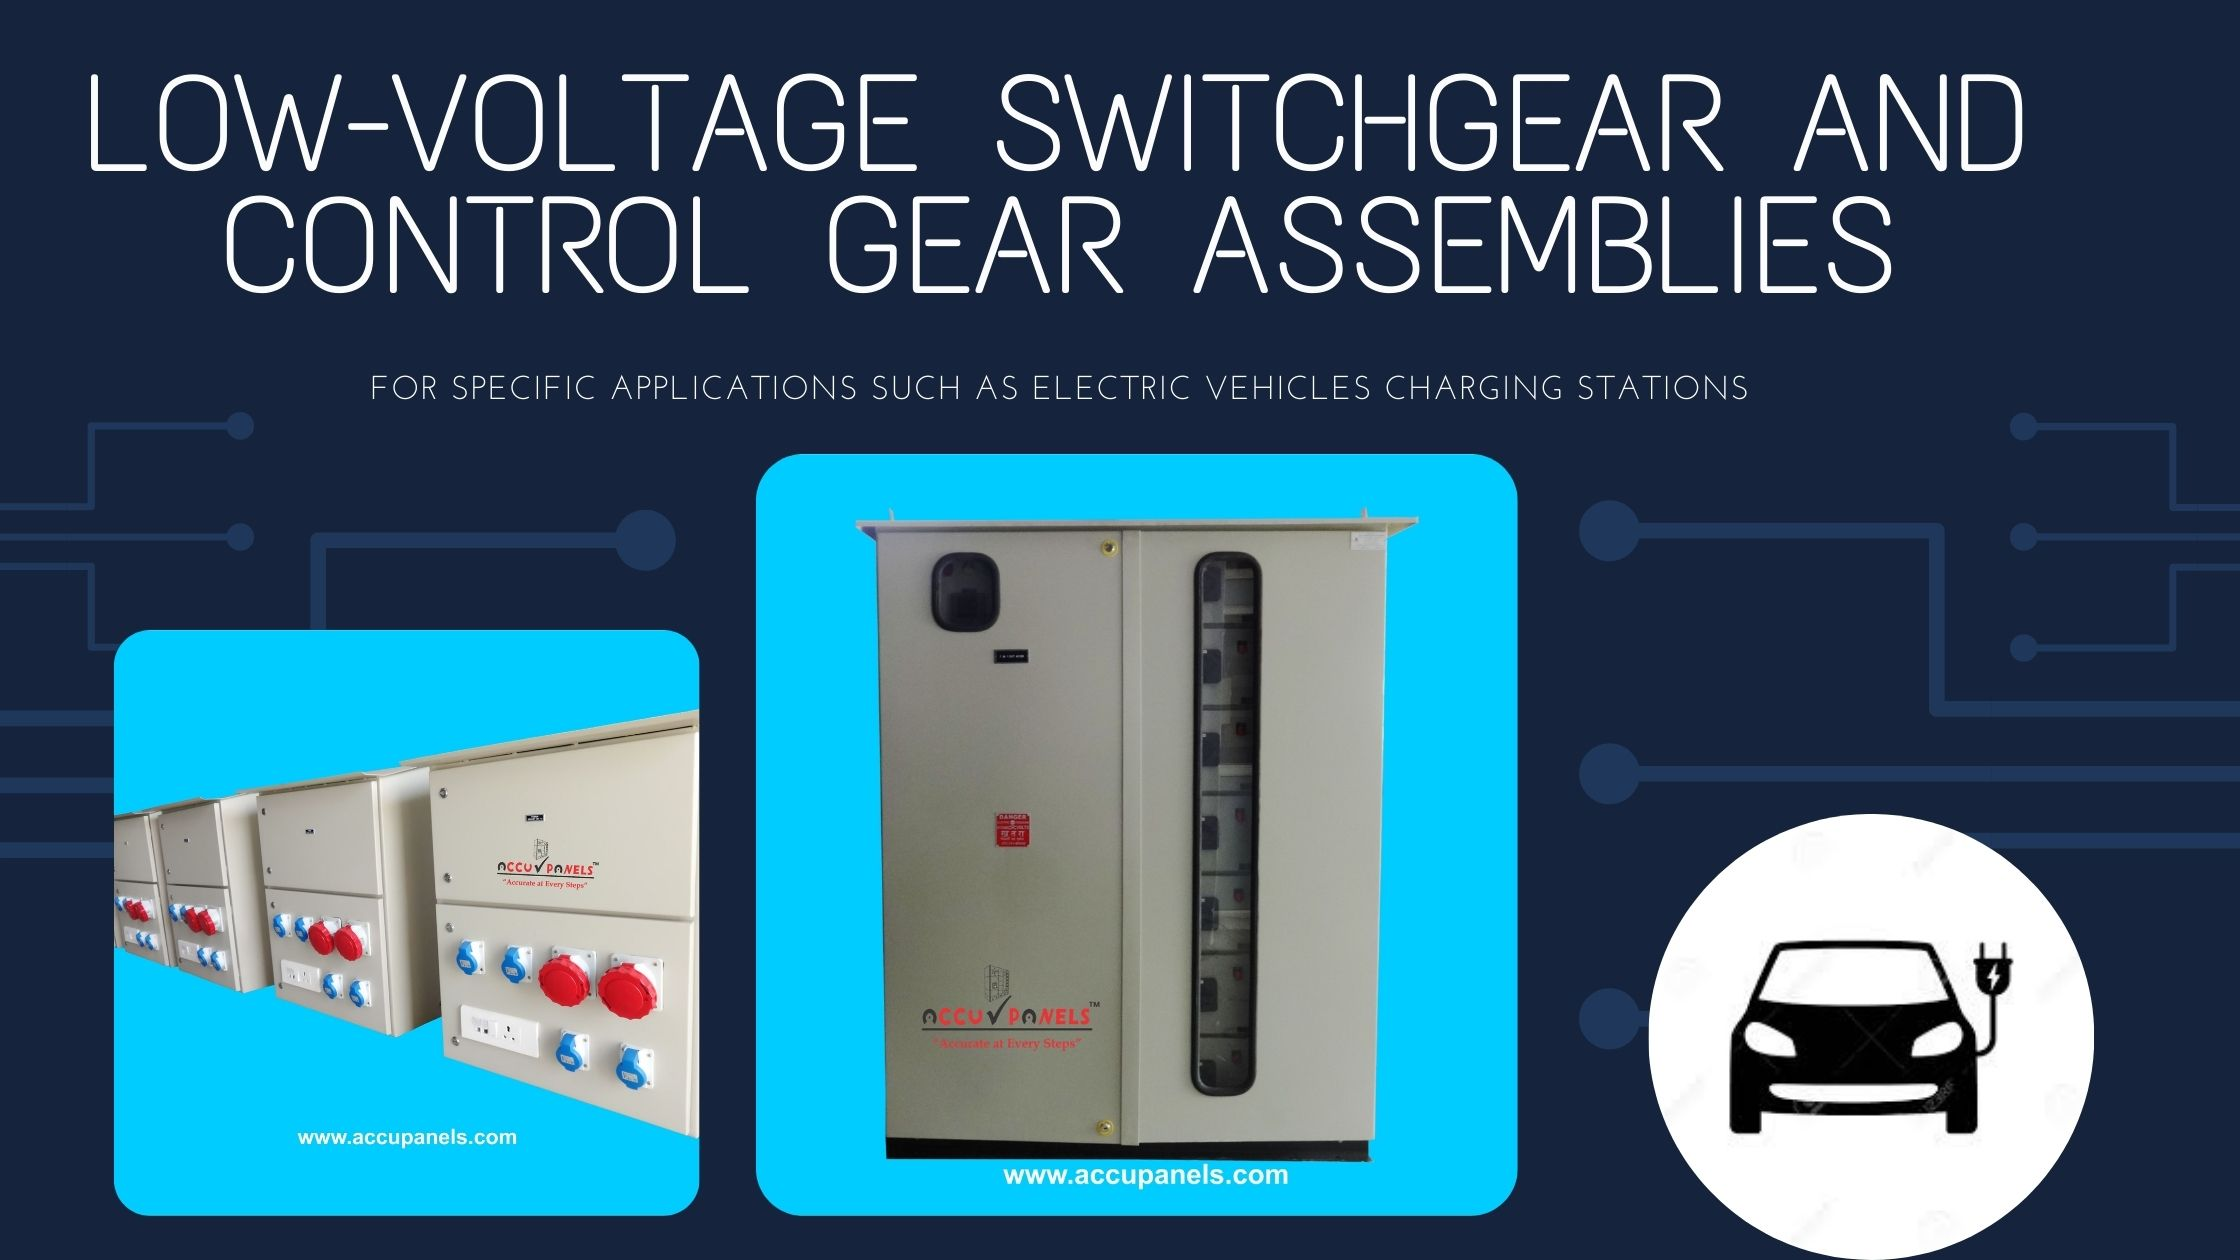 Low-voltage switchgear and control gear assemblies for specific applications such as electric vehicles charging stations